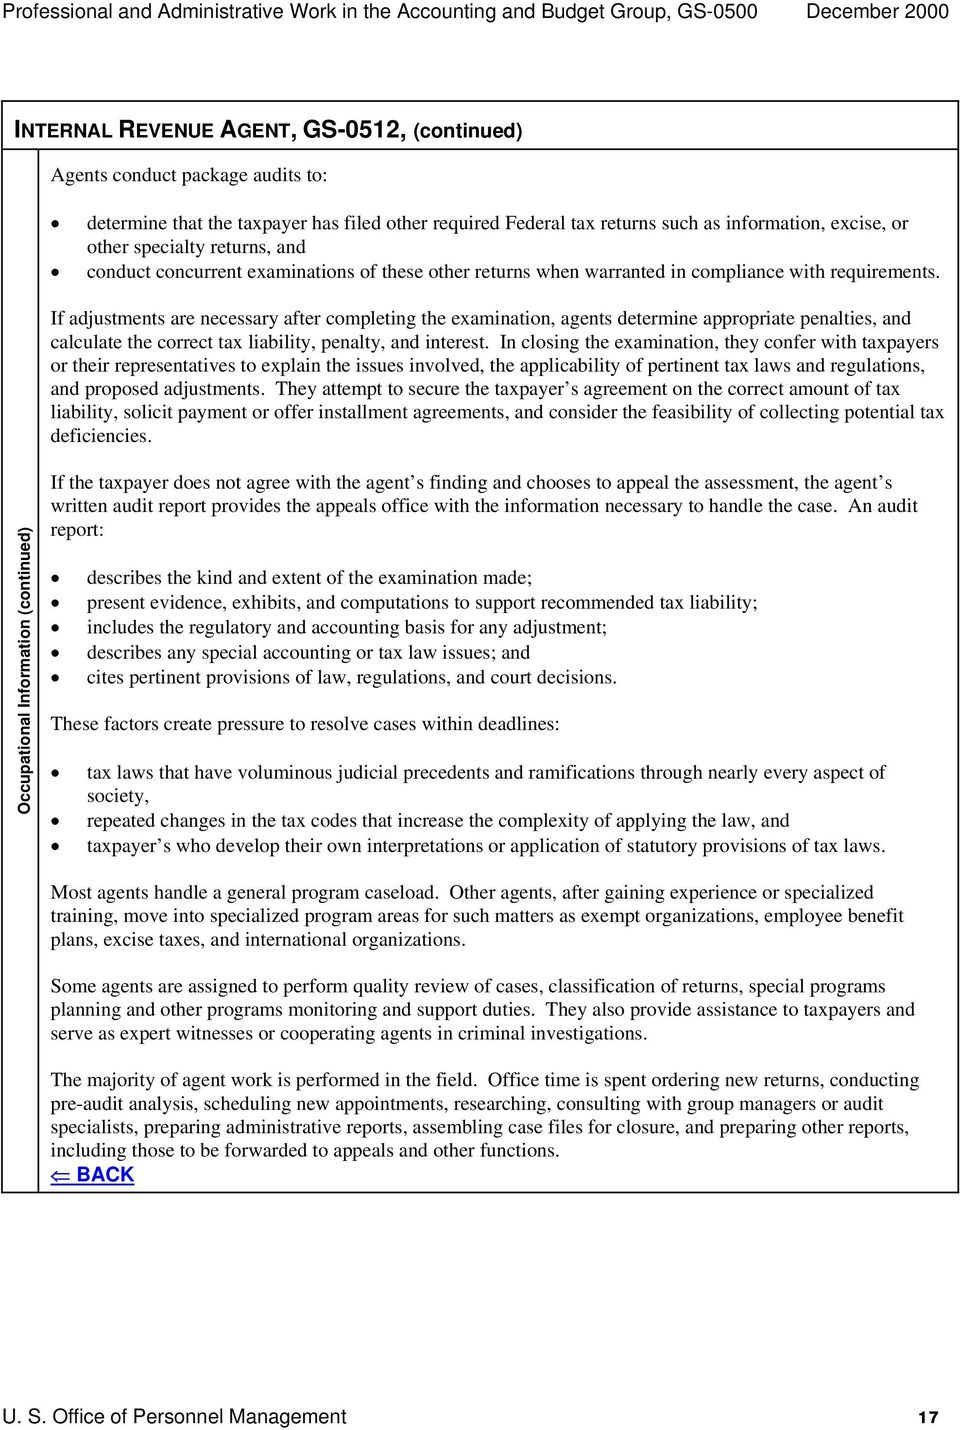 Job Family Position Classification Standard for Professional and